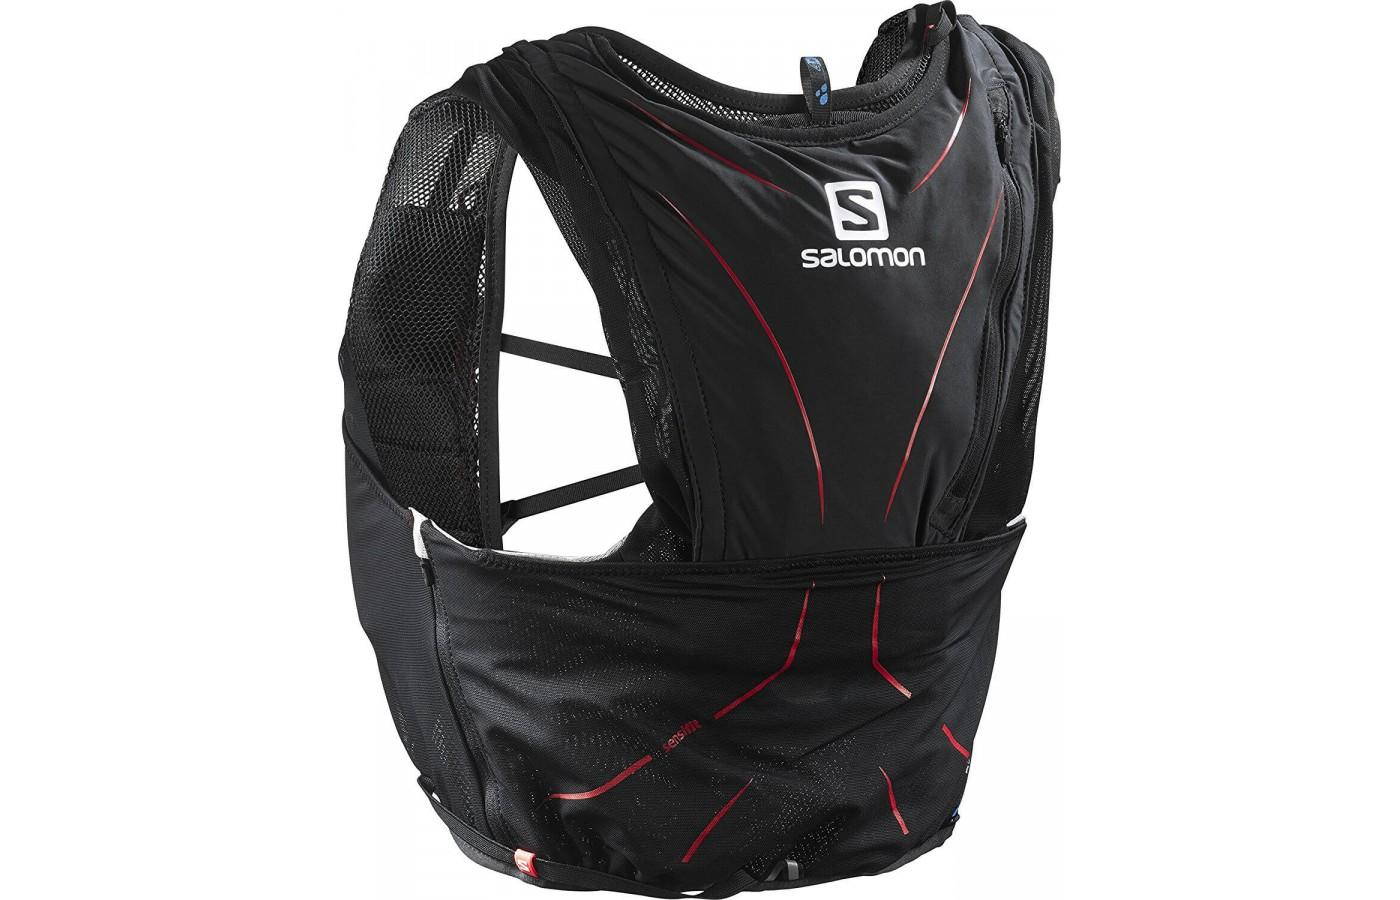 The Salomon Adv Skin 12 Set is not a backpack as much as it a wearable carrying solution.